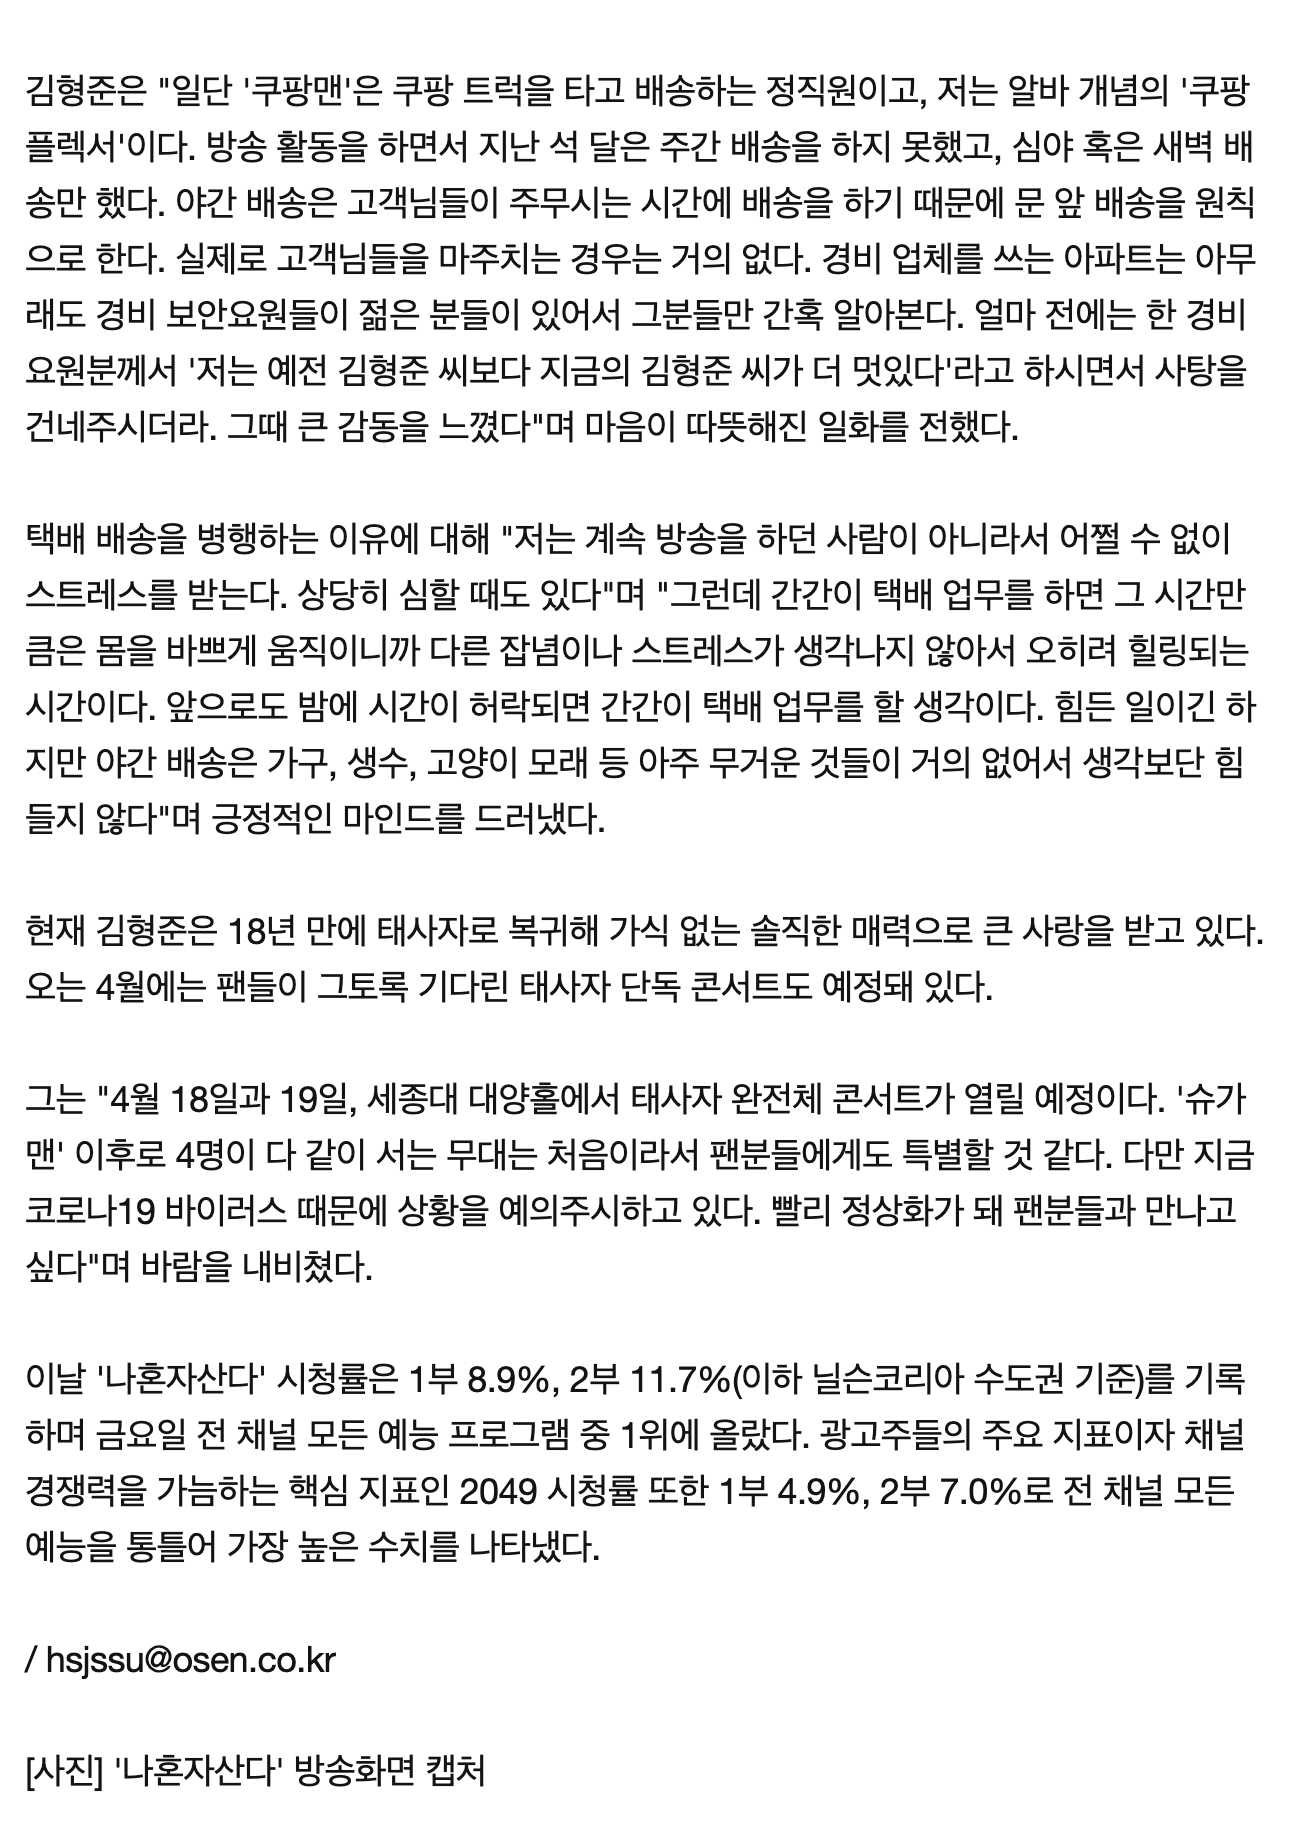 screencapture-n-news-naver-entertain-article-109-0004173935-2020-03-01-02_39_23-T3